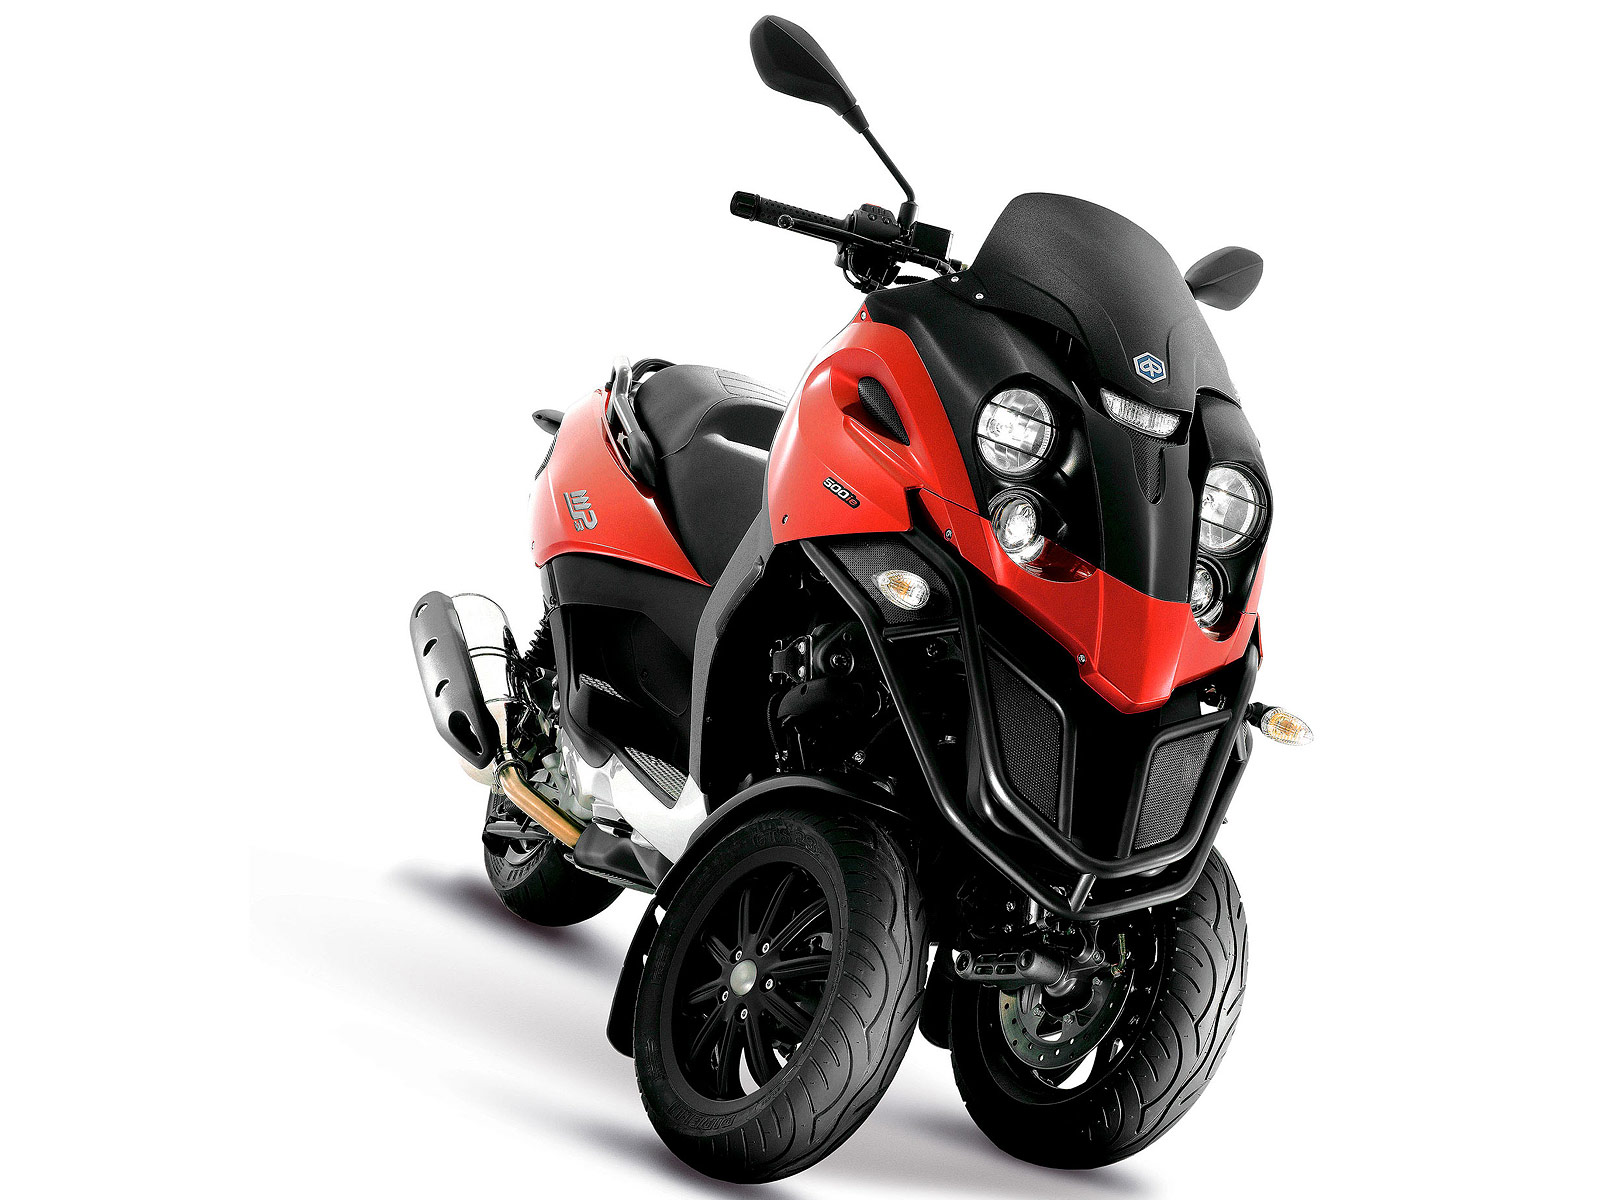 2013 piaggio mp3 500 auto insurance information scooter. Black Bedroom Furniture Sets. Home Design Ideas